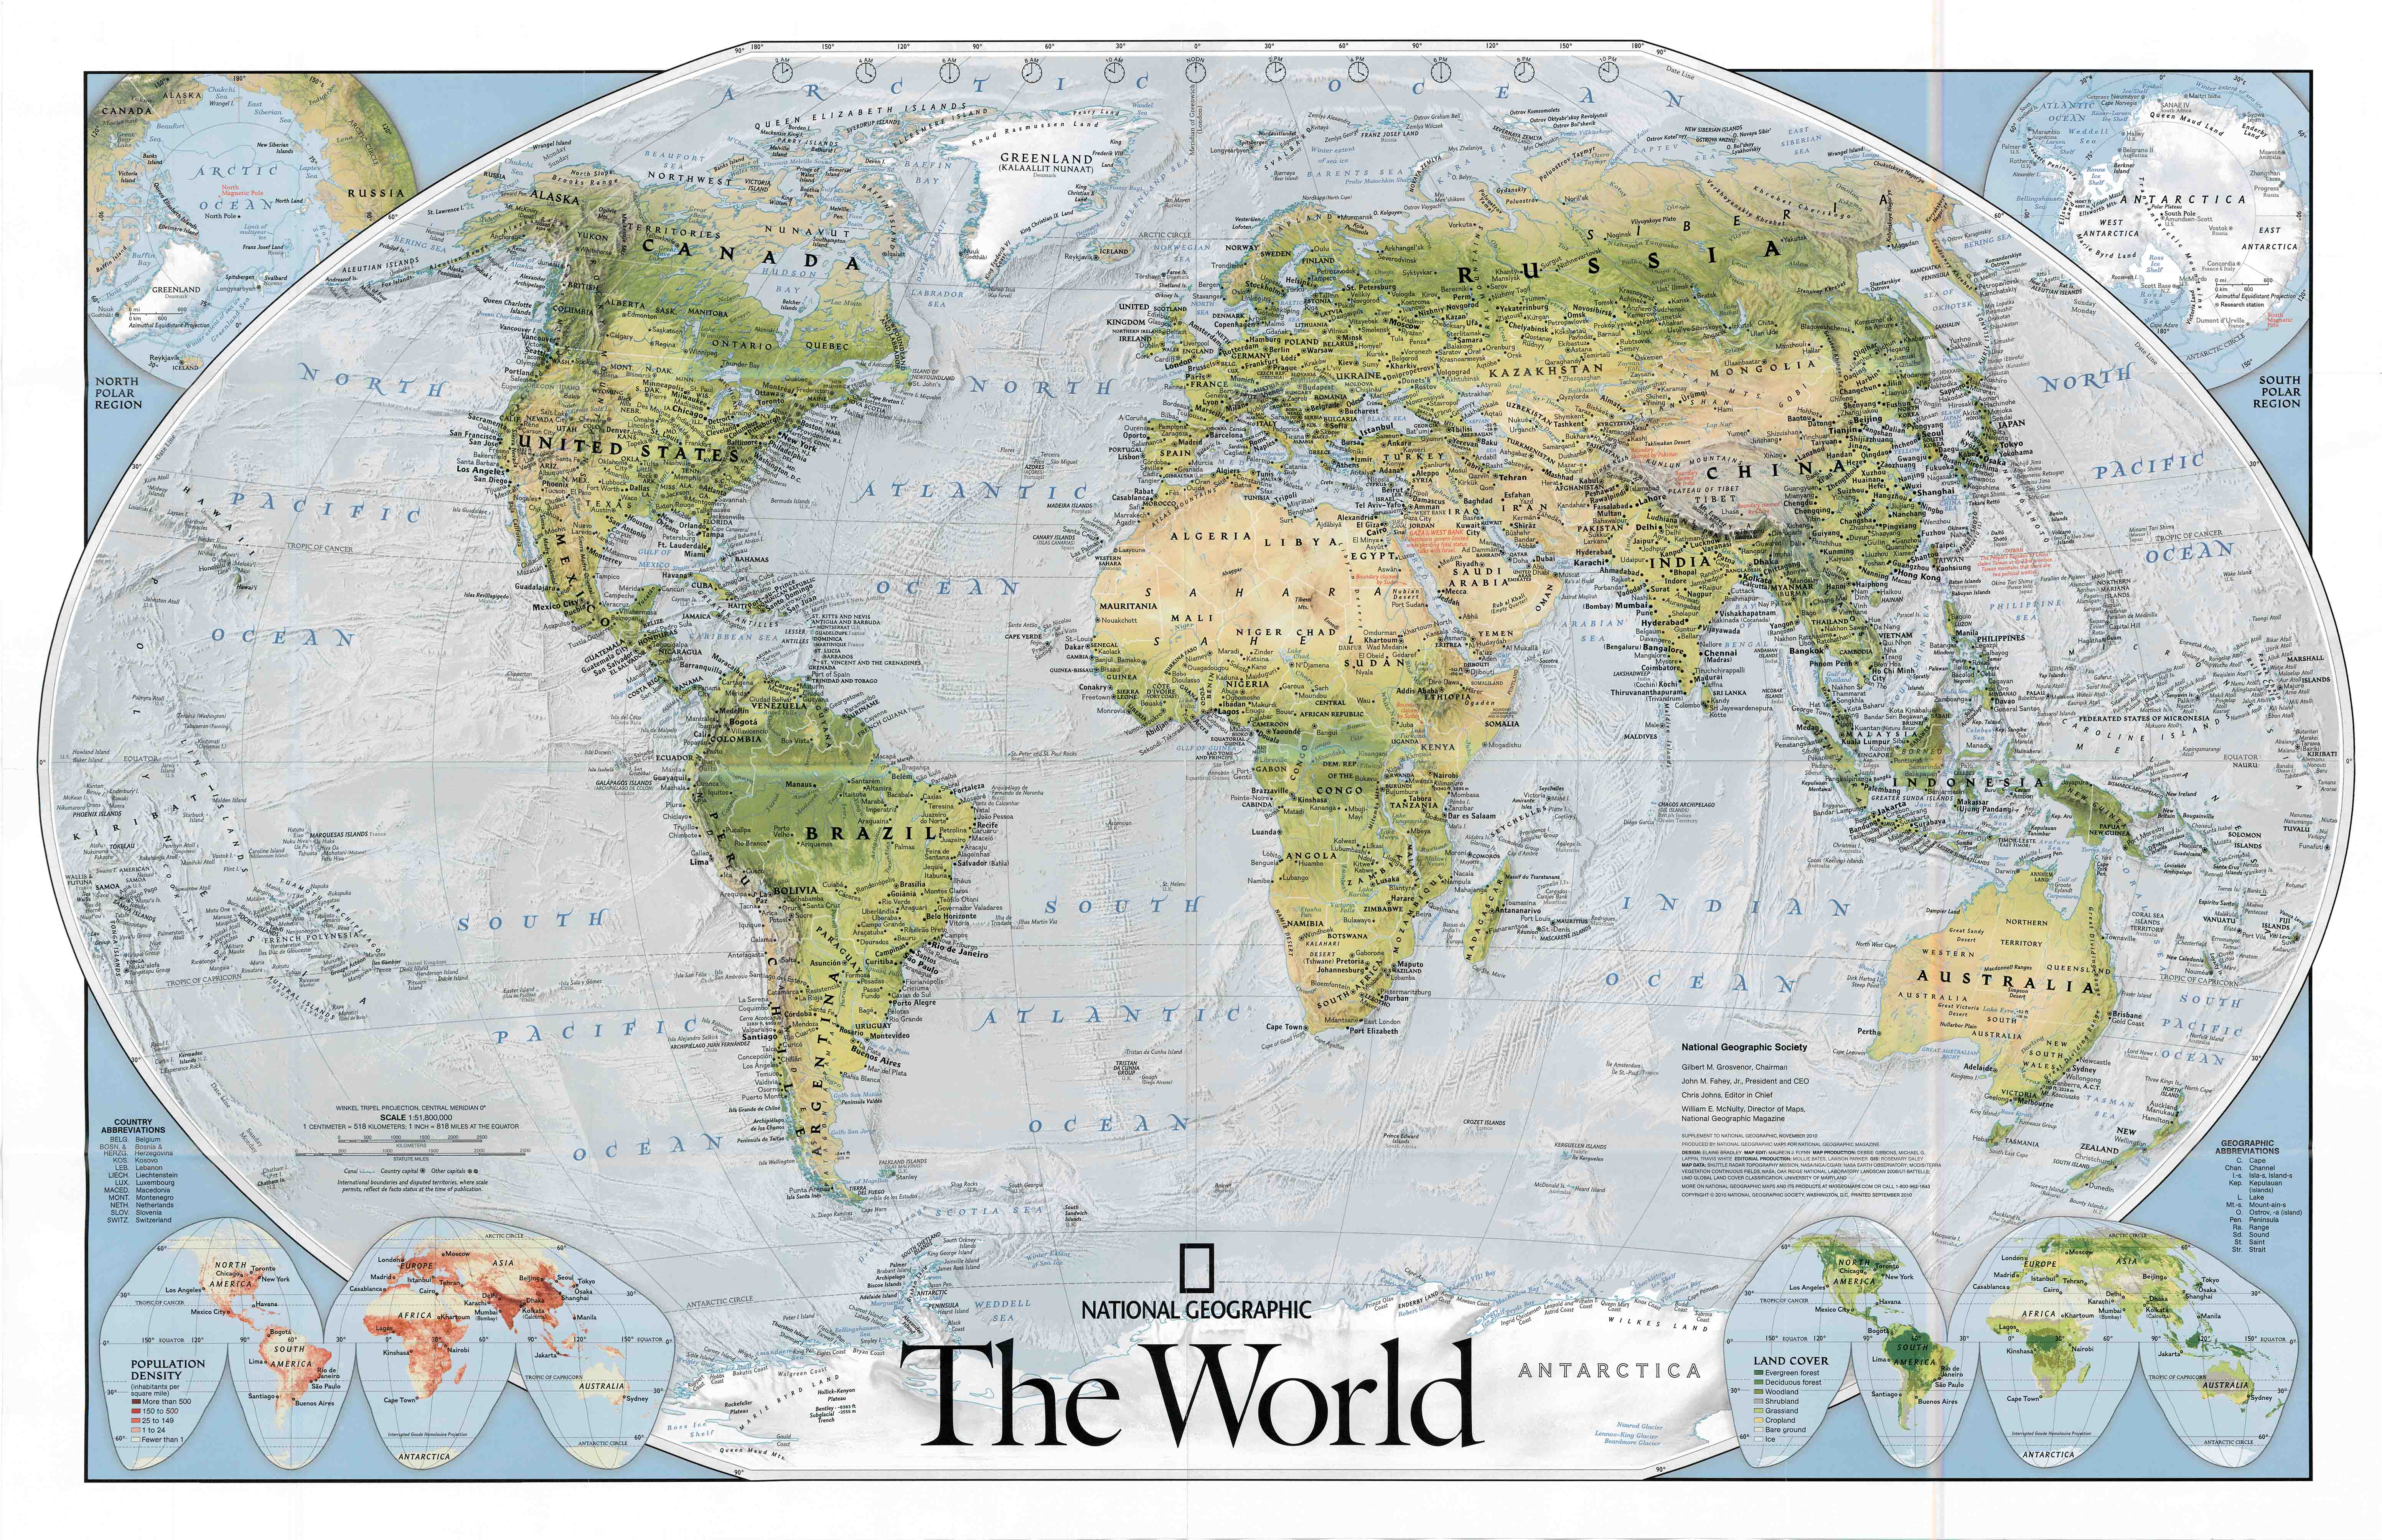 National geographic world map for ipad